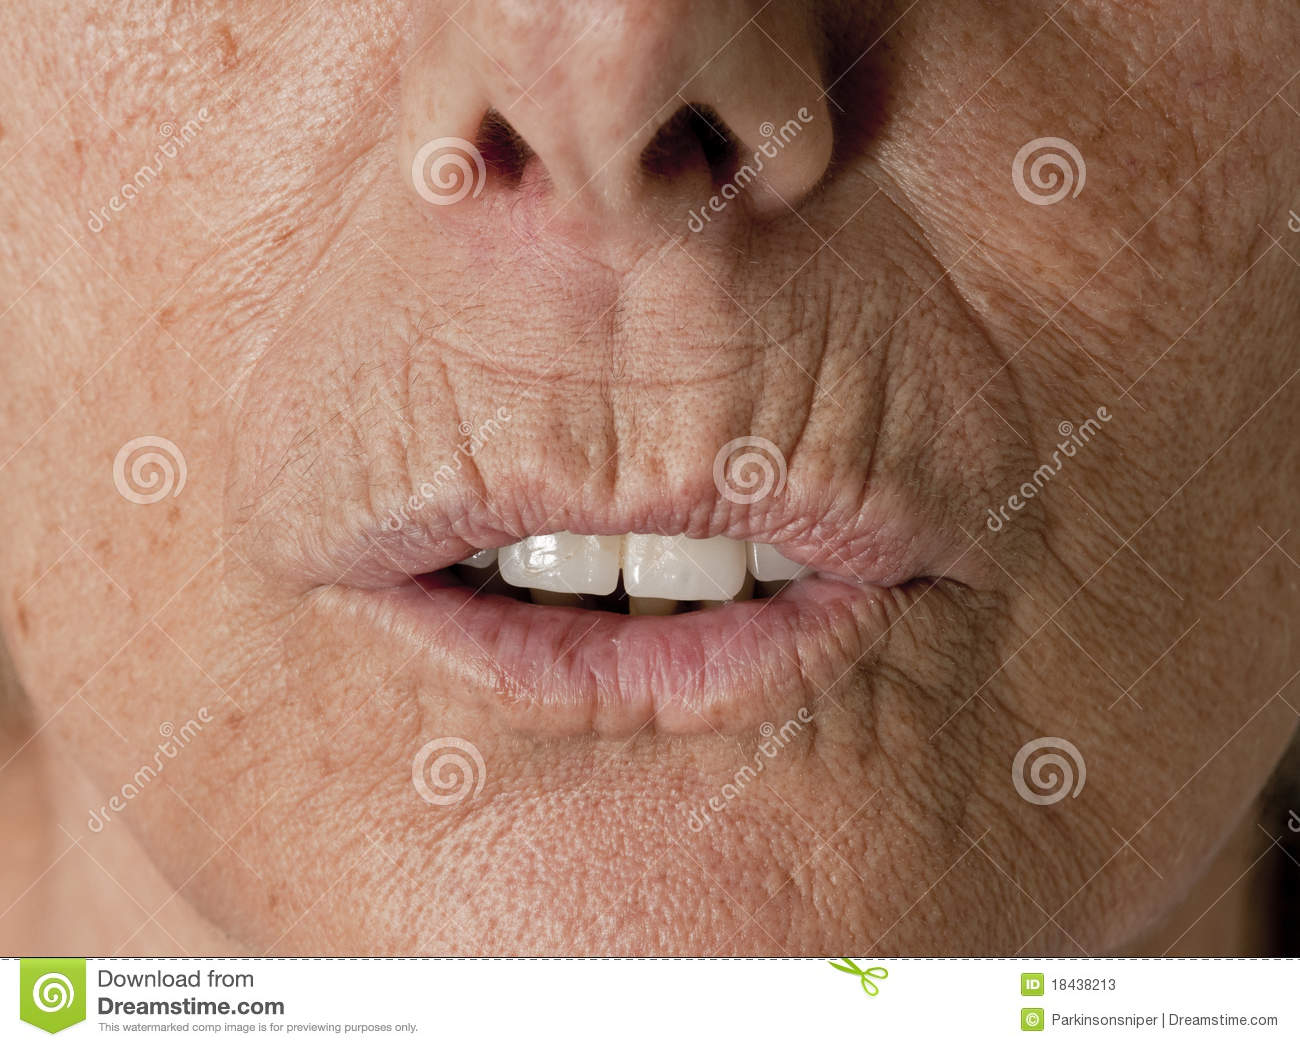 Image Gallery lip wrinkles from smoking